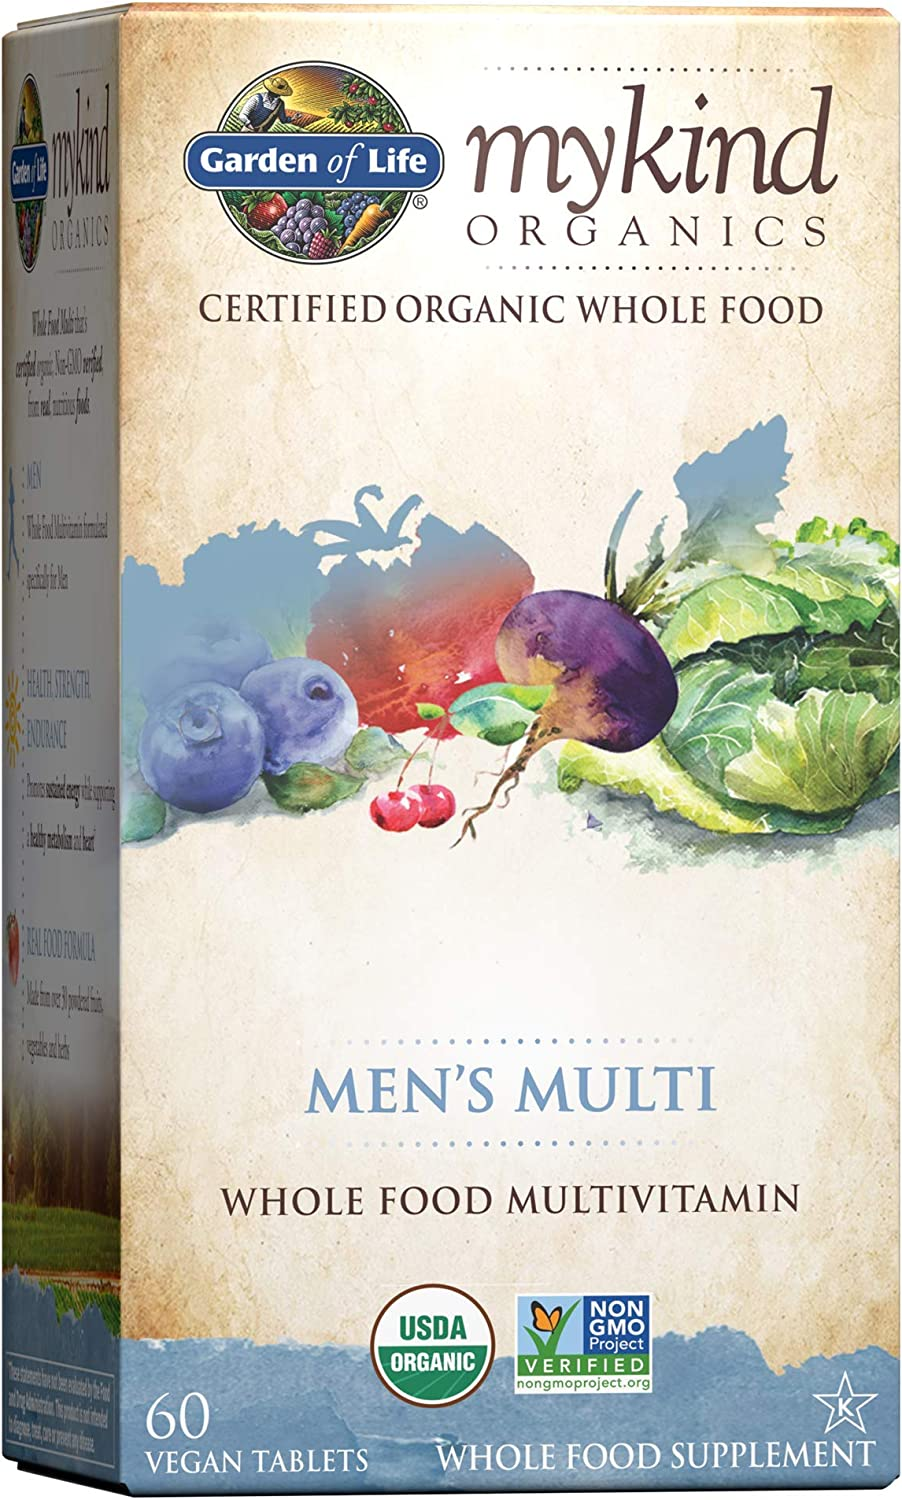 Garden of Life mykind Organics Whole Food Multivitamin for Men, 60 Tablets, Vegan Mens Vitamins and Minerals for Mens Health and Well-Being, Certified Organic Vegan Mens Multi